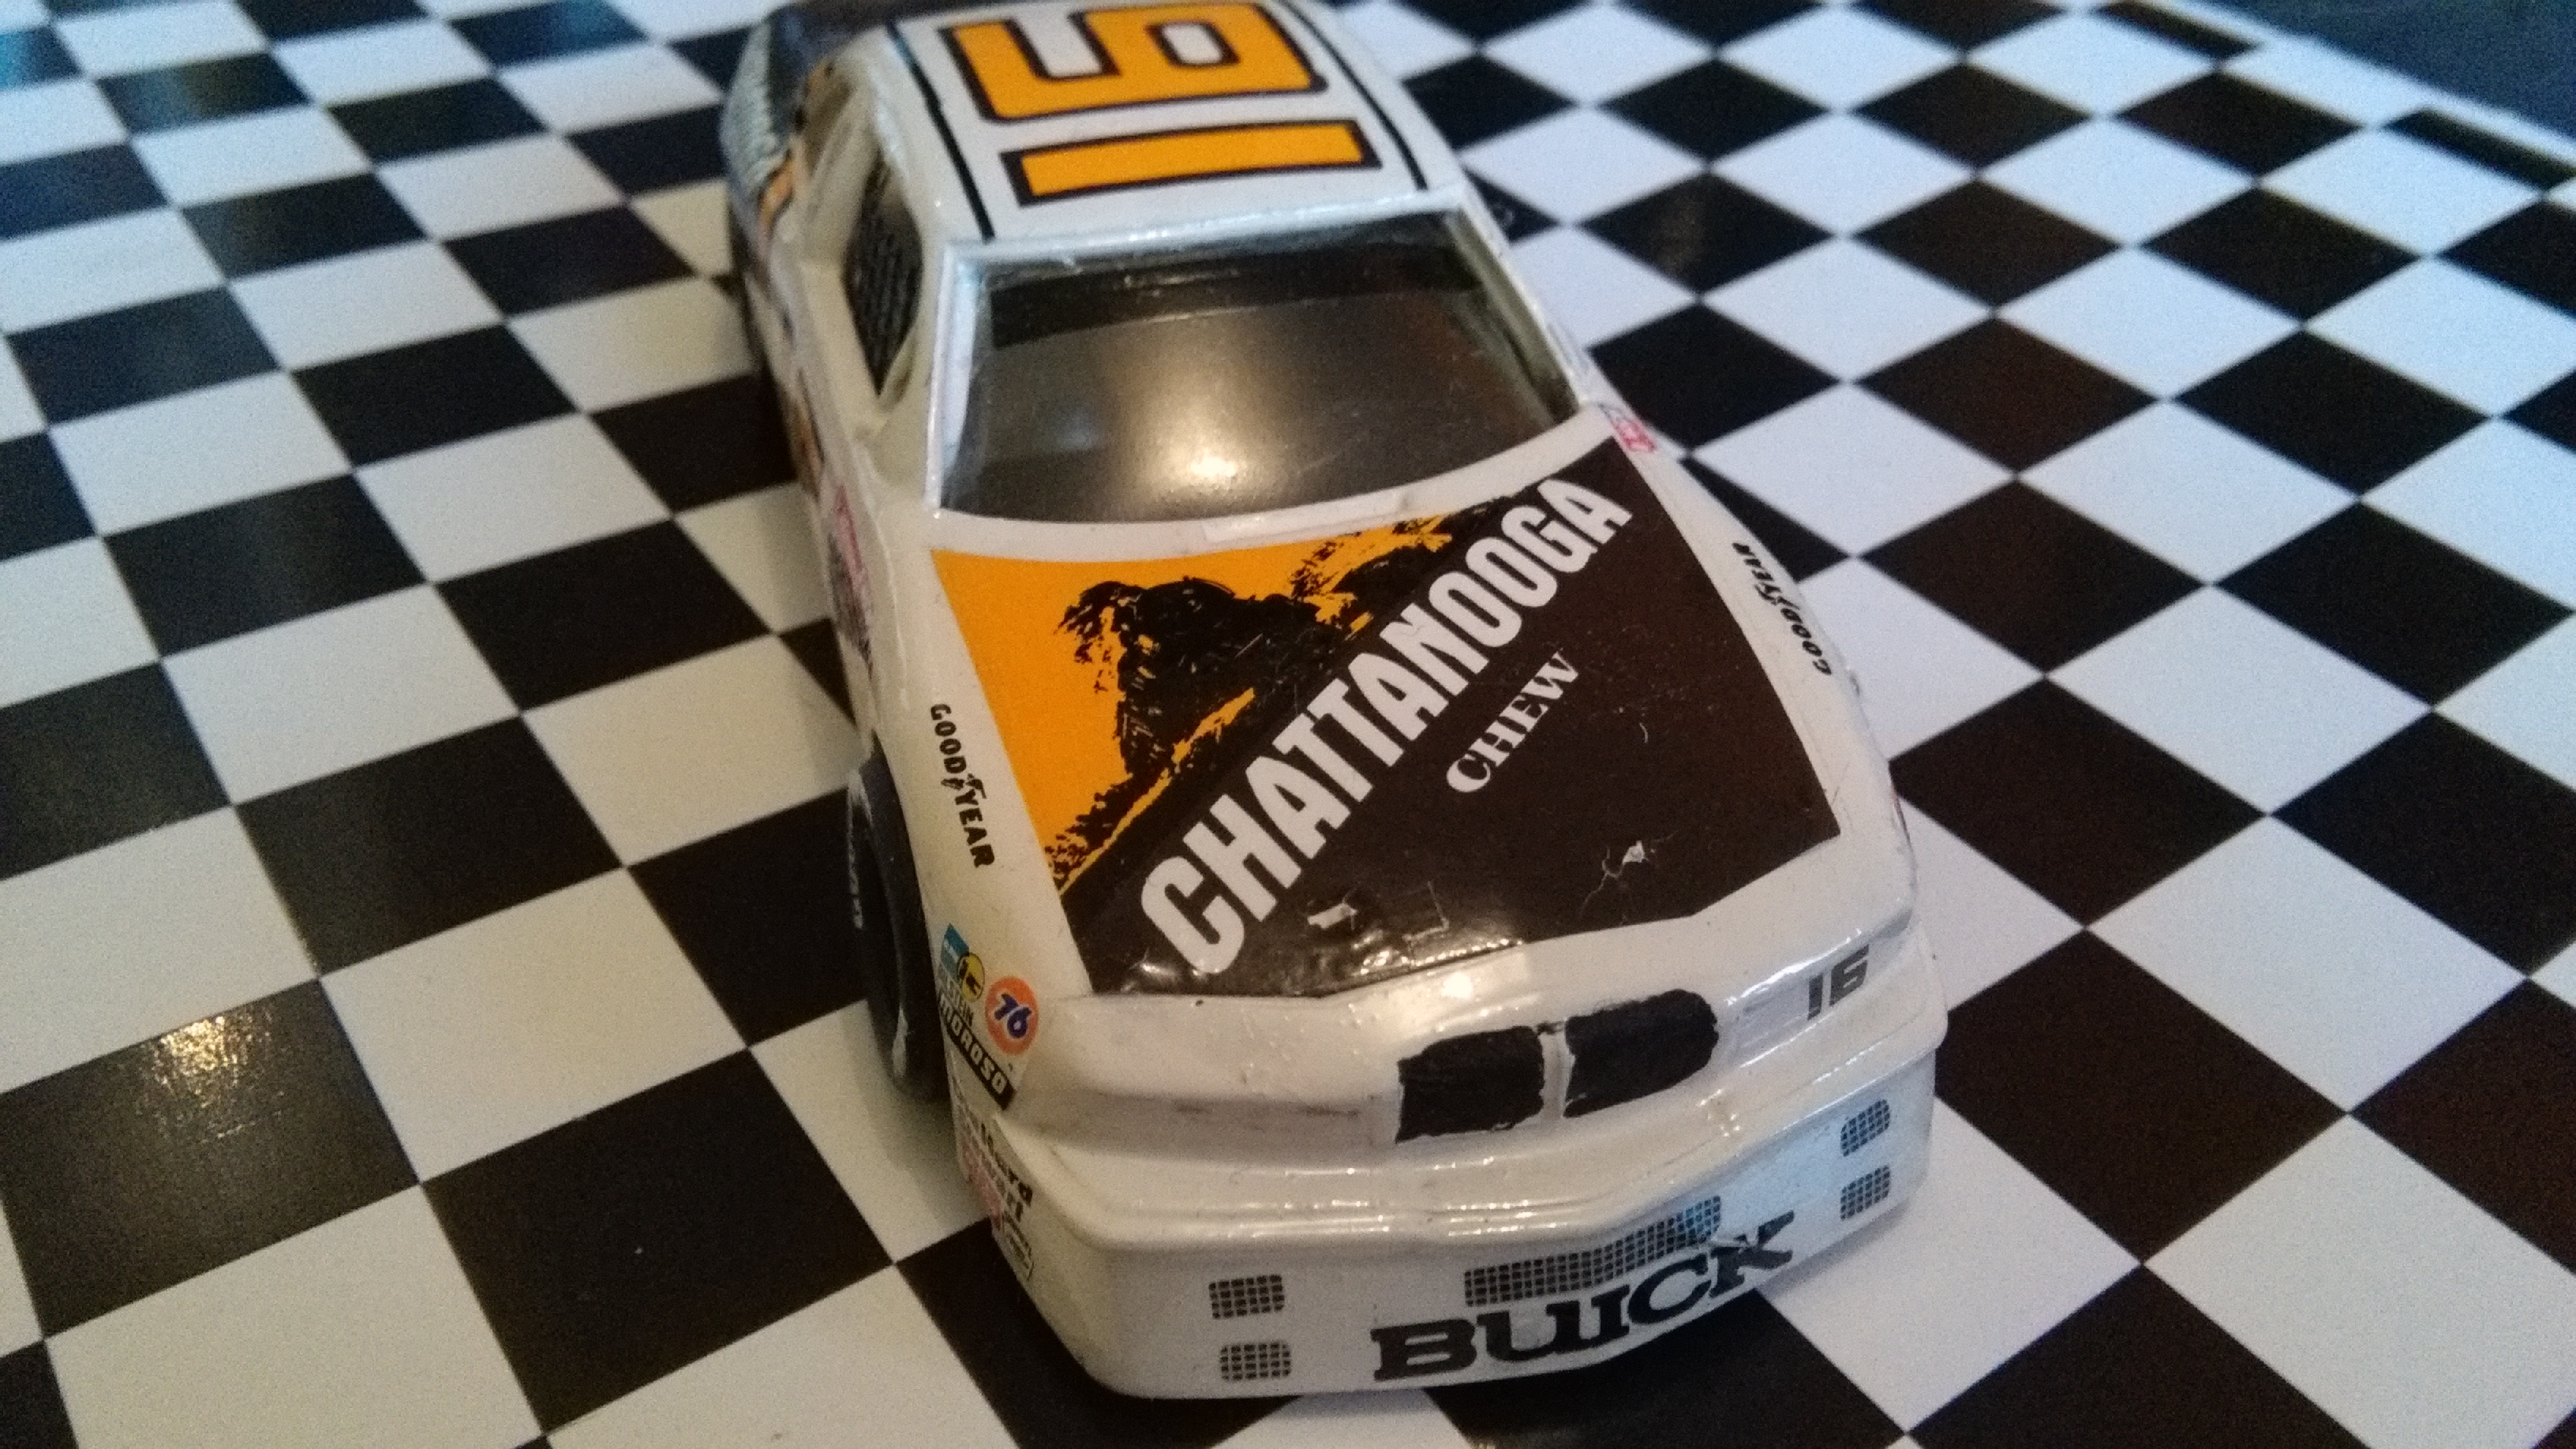 Buick Regal Chattanooga starter 1/43 (not me) 652200IMG20170211141501